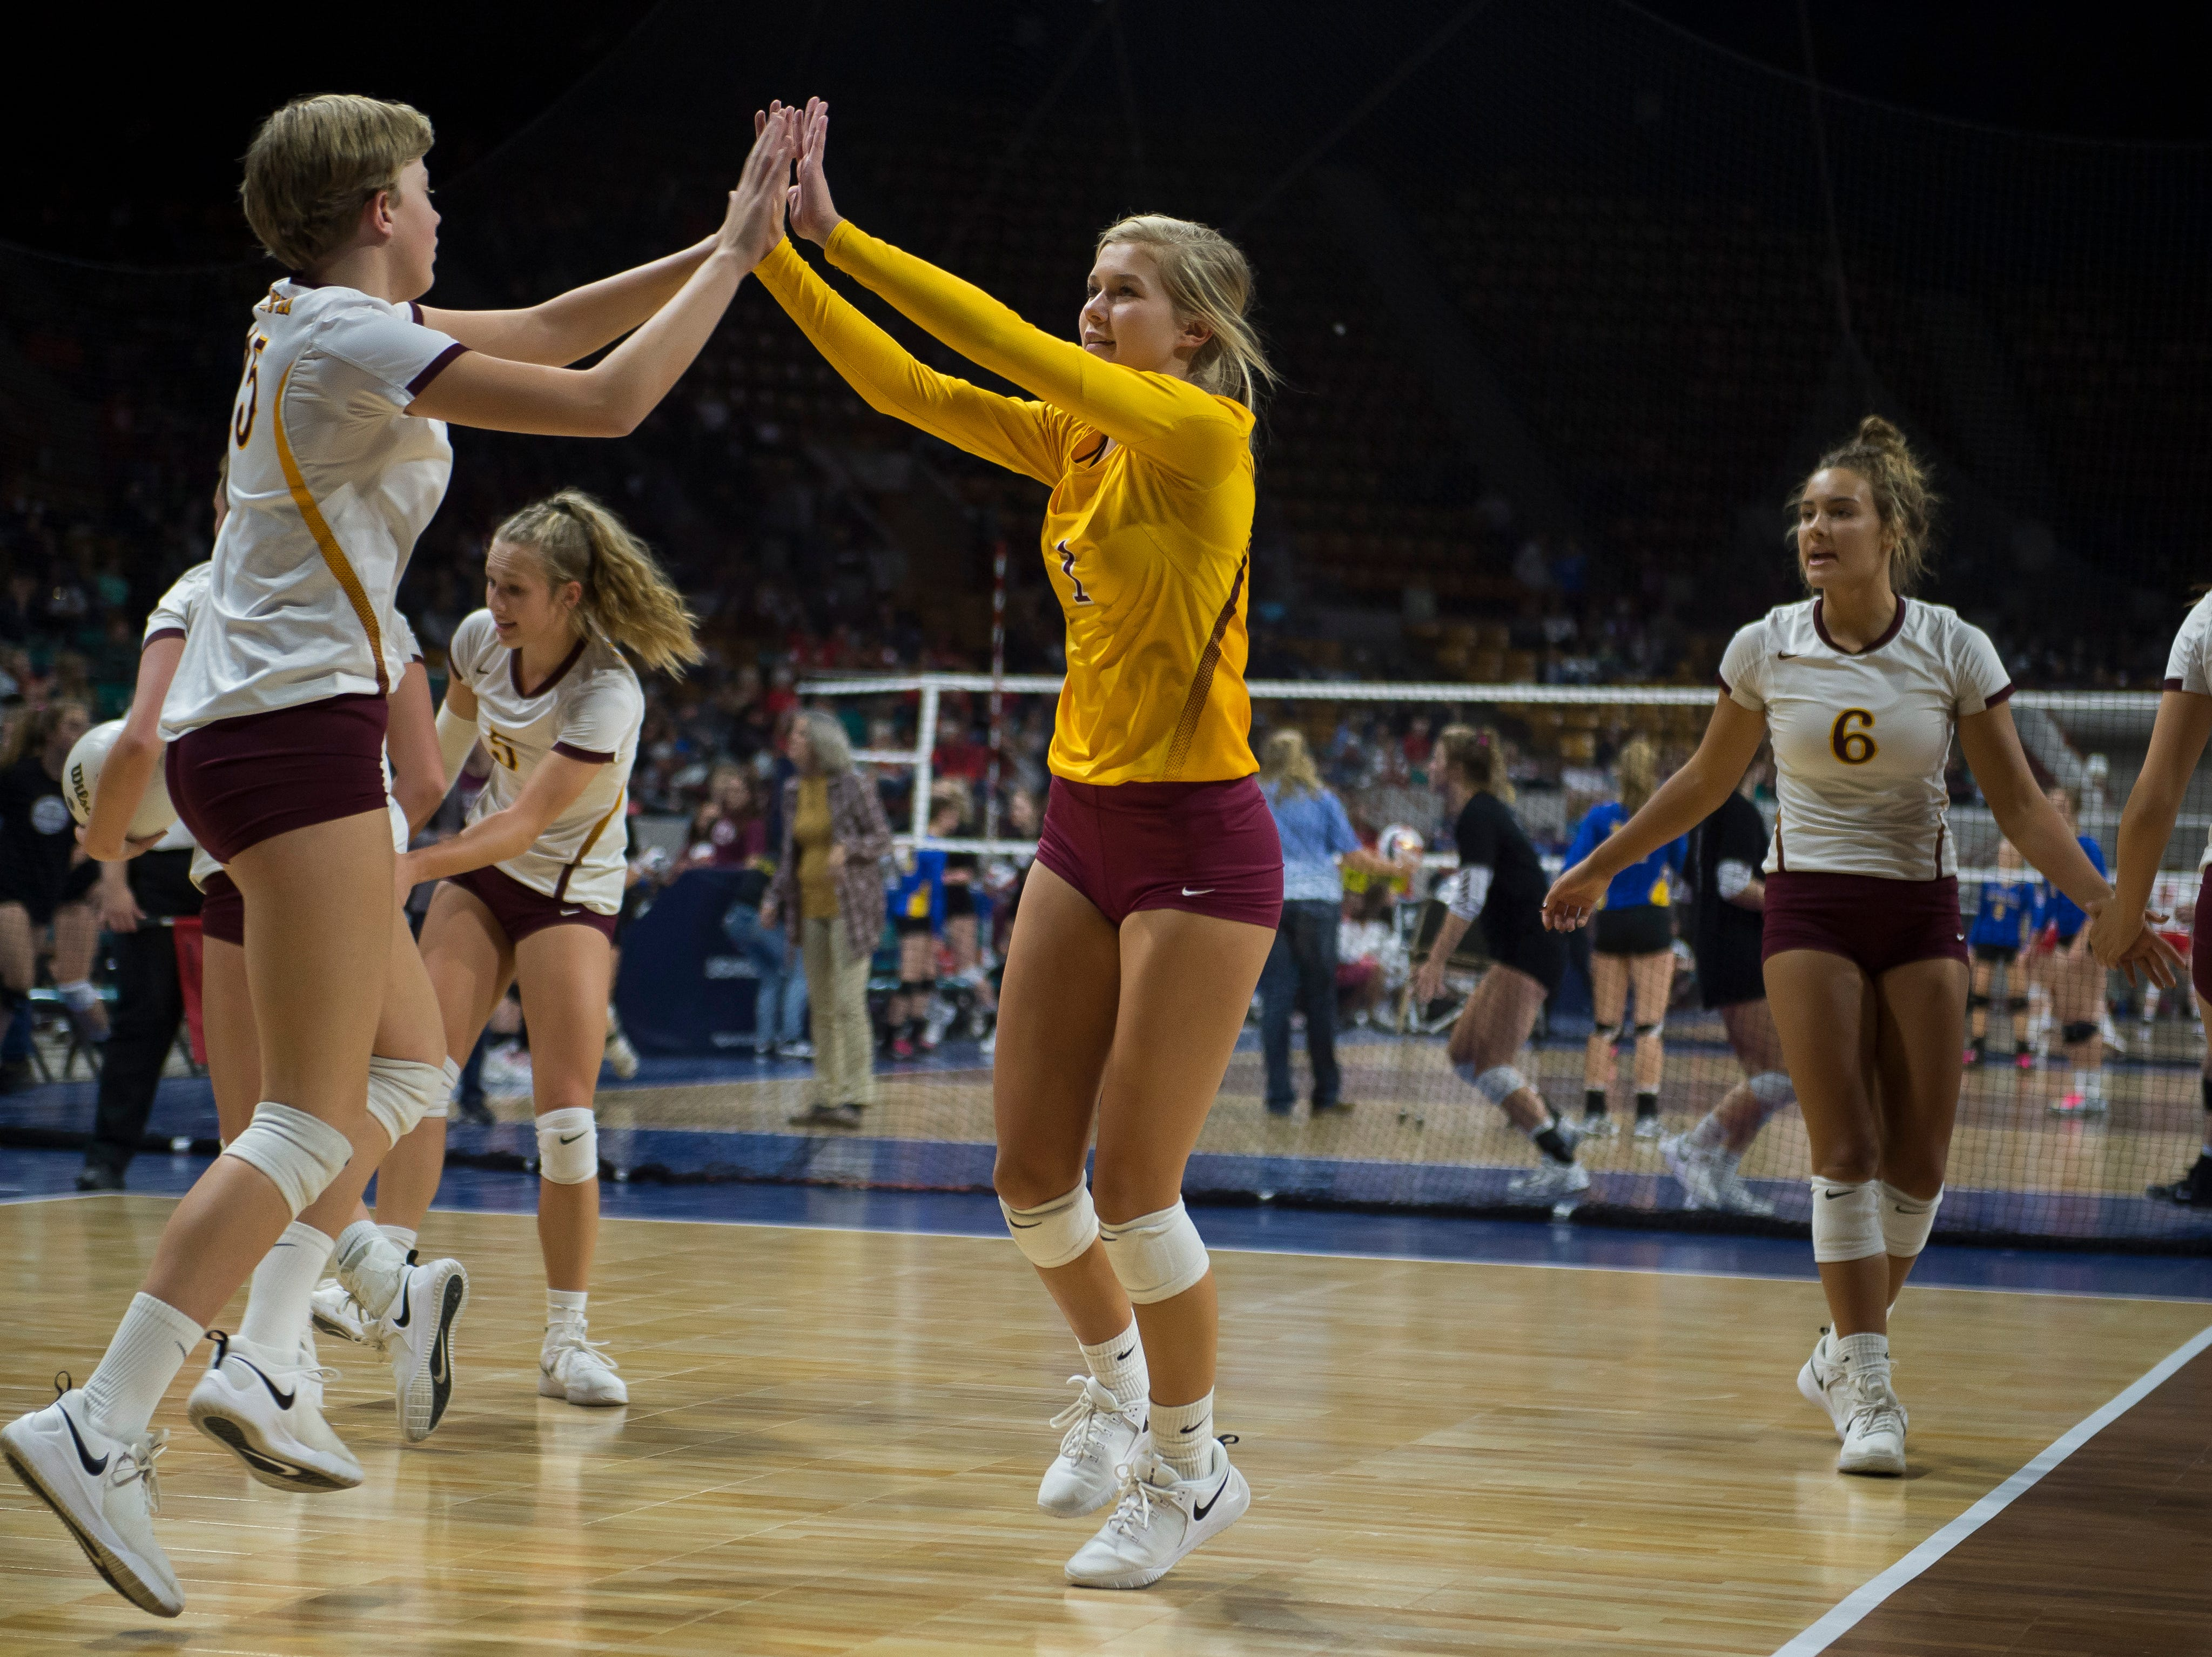 Windsor High School senior Hollie Hoffman (1) high fives teammate Adison Moyer (15) during a state first round game against Fossil Ridge High School on Thursday, Nov. 8, 2018, at the Denver Coliseum in Denver, Colo.